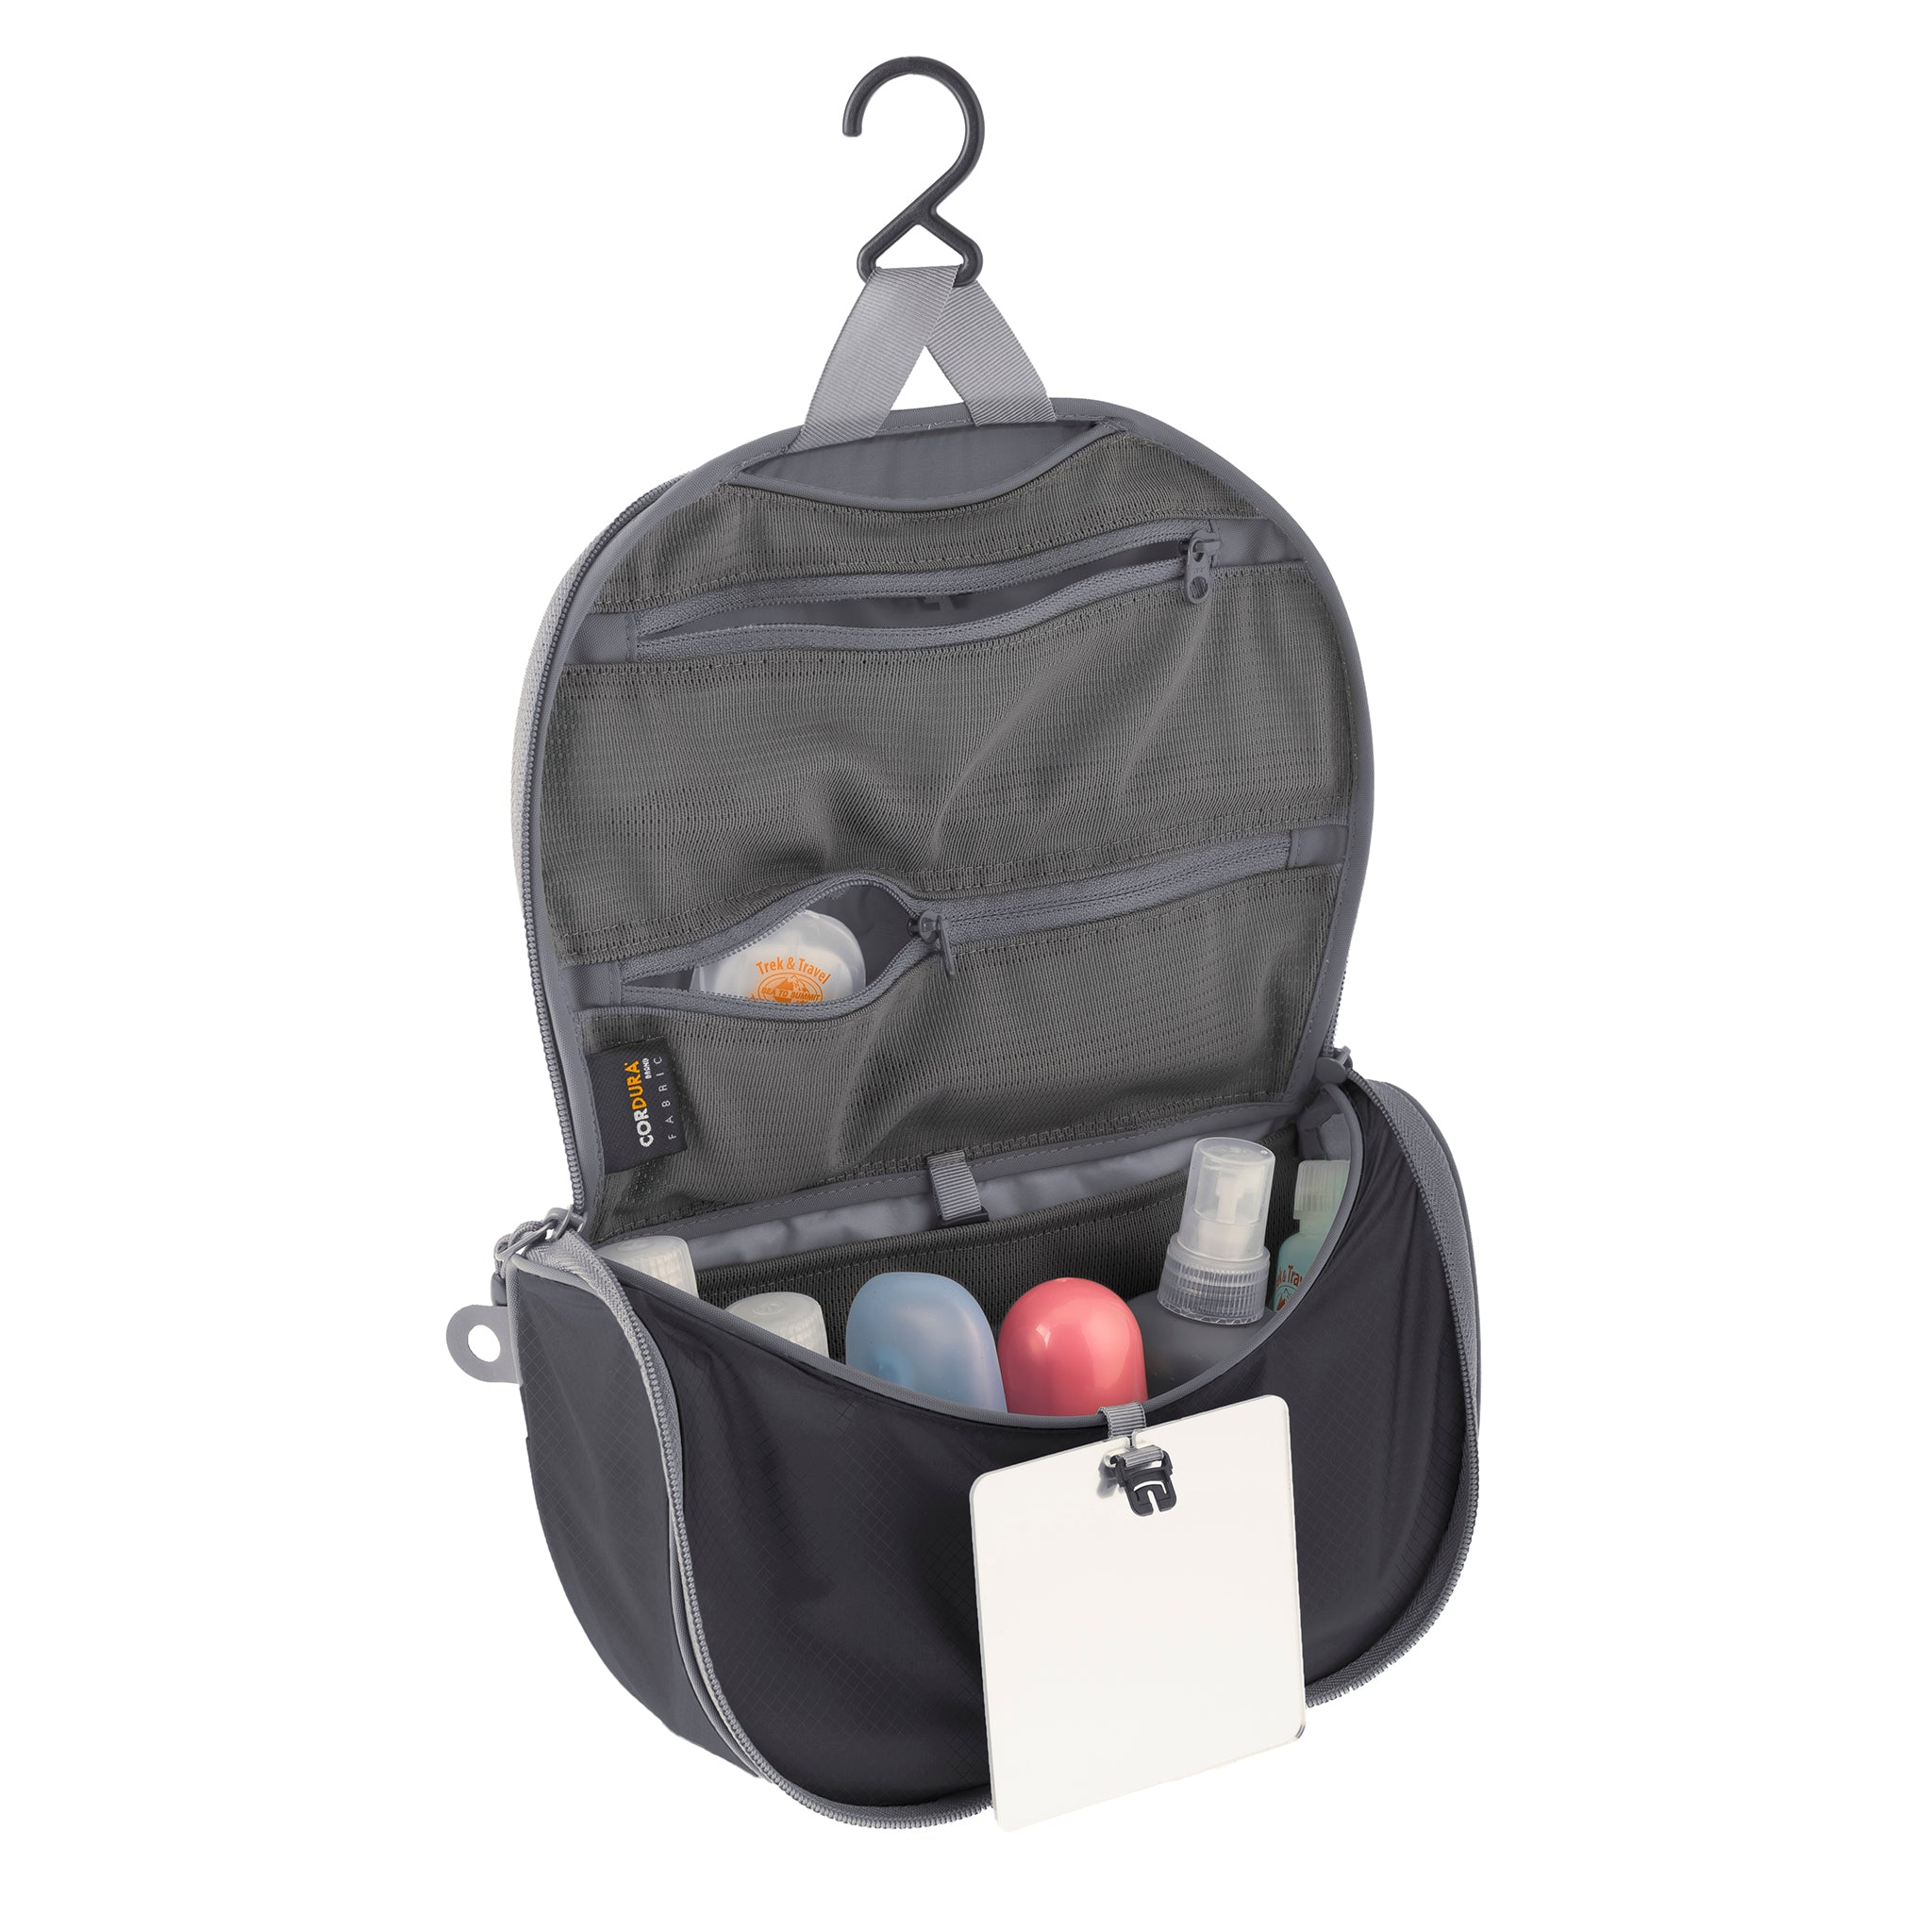 Travelling Light _ Hanging Travel Toiletry Bag _ Black